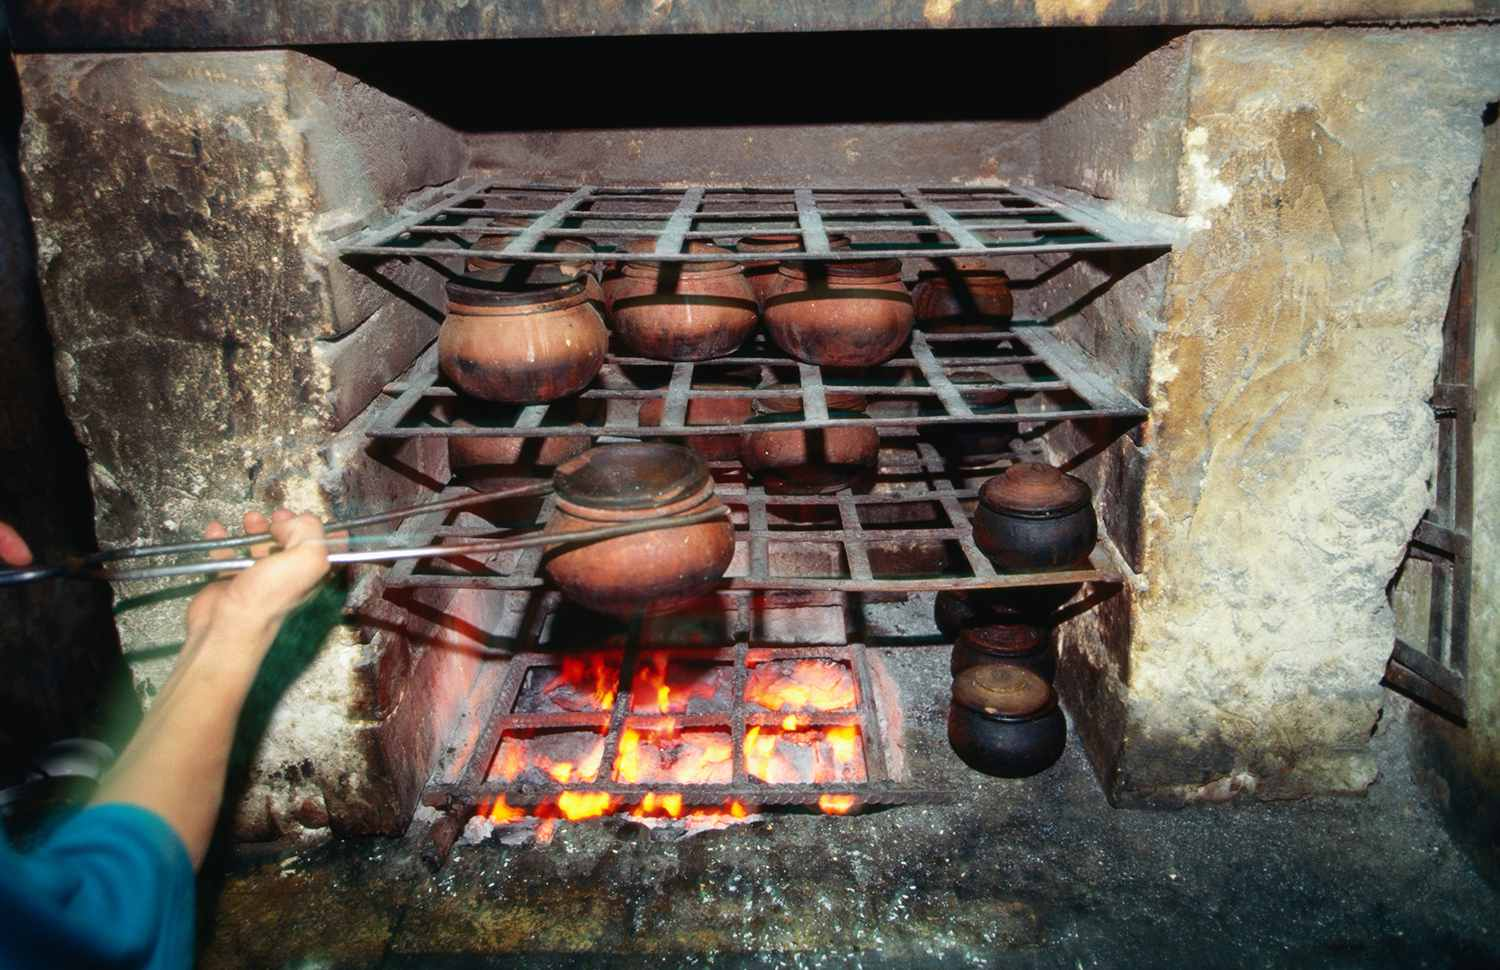 Clay pots cooking over a fire.